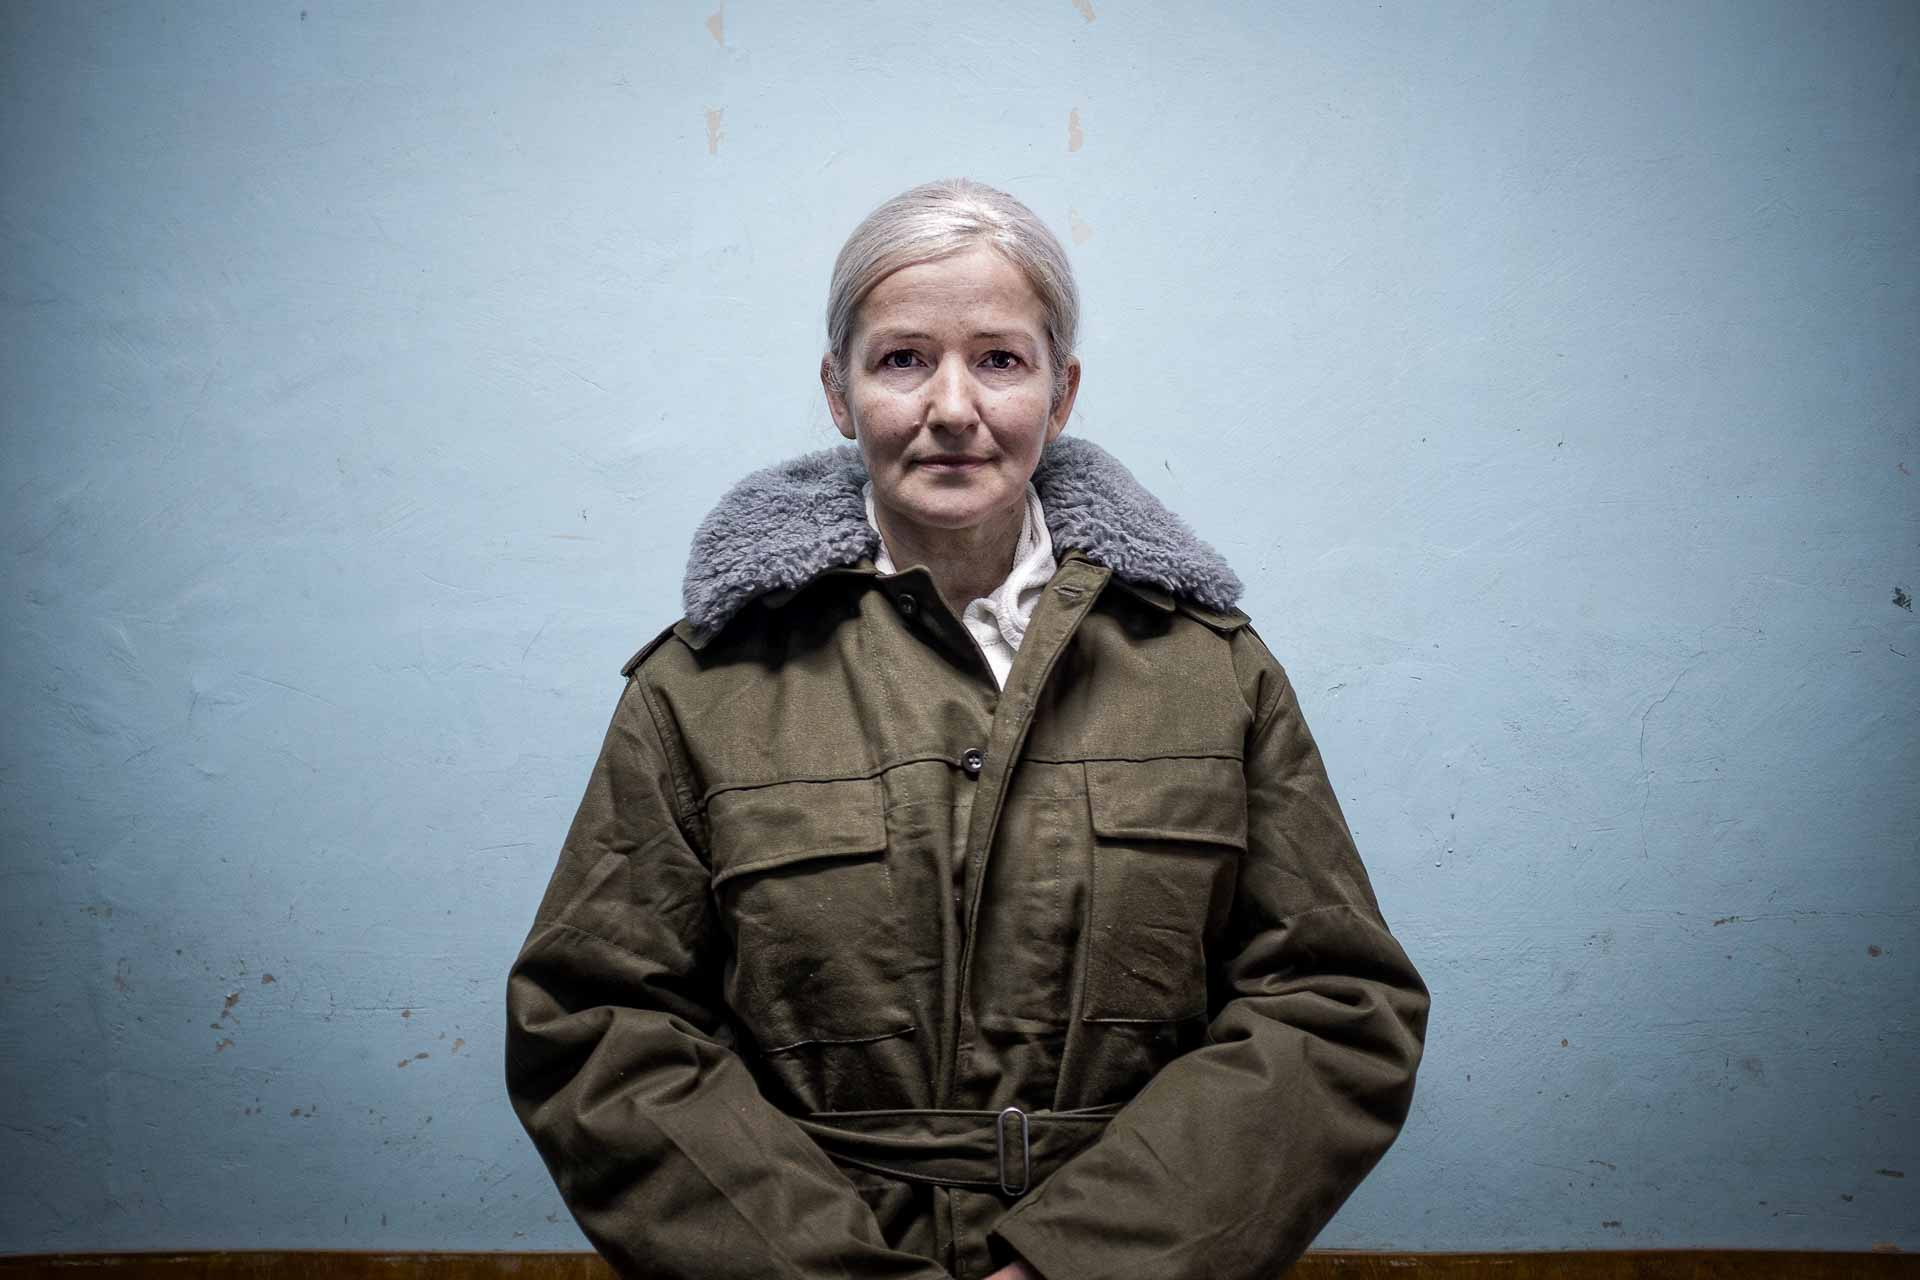 Taicia, volunteer, 51, is a nurse from Kyiv. She helps humbly. Her face seems coming straight out of a sovietic mural fresco of the fifties. Bakhmout - UKRAINE